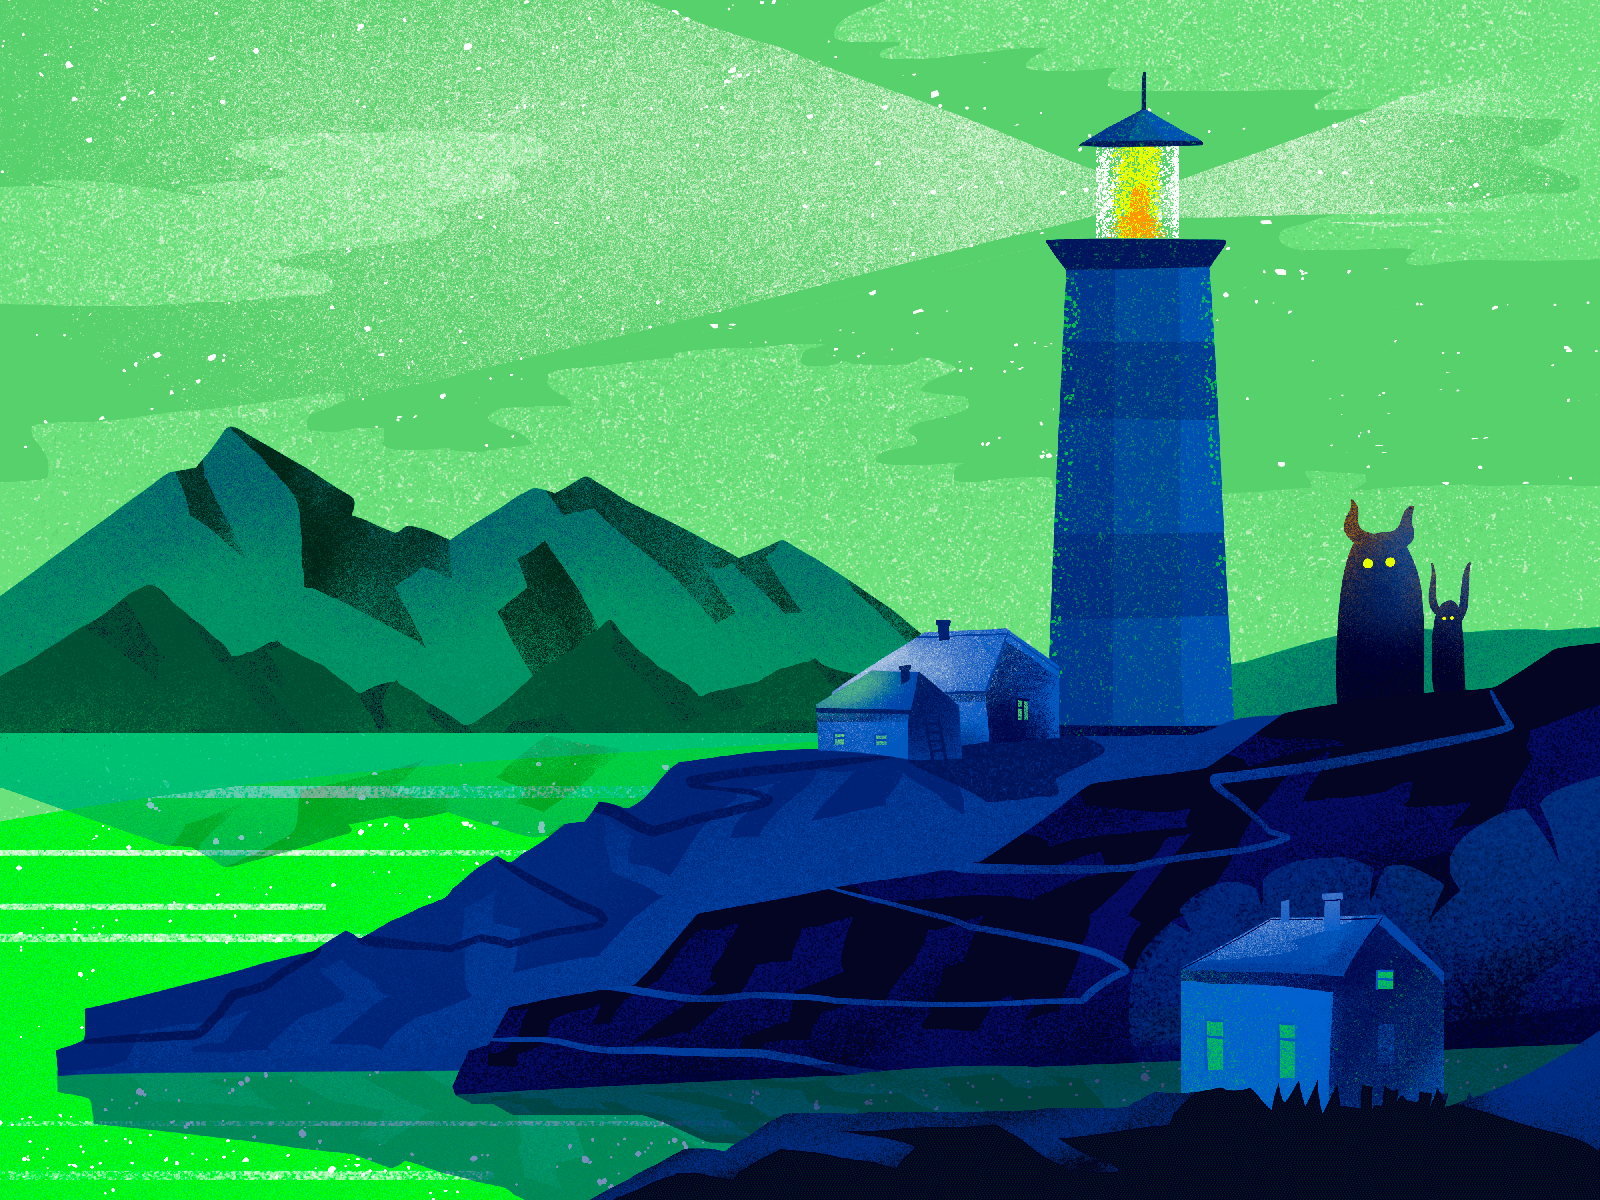 lighthouse illustration tubikarts